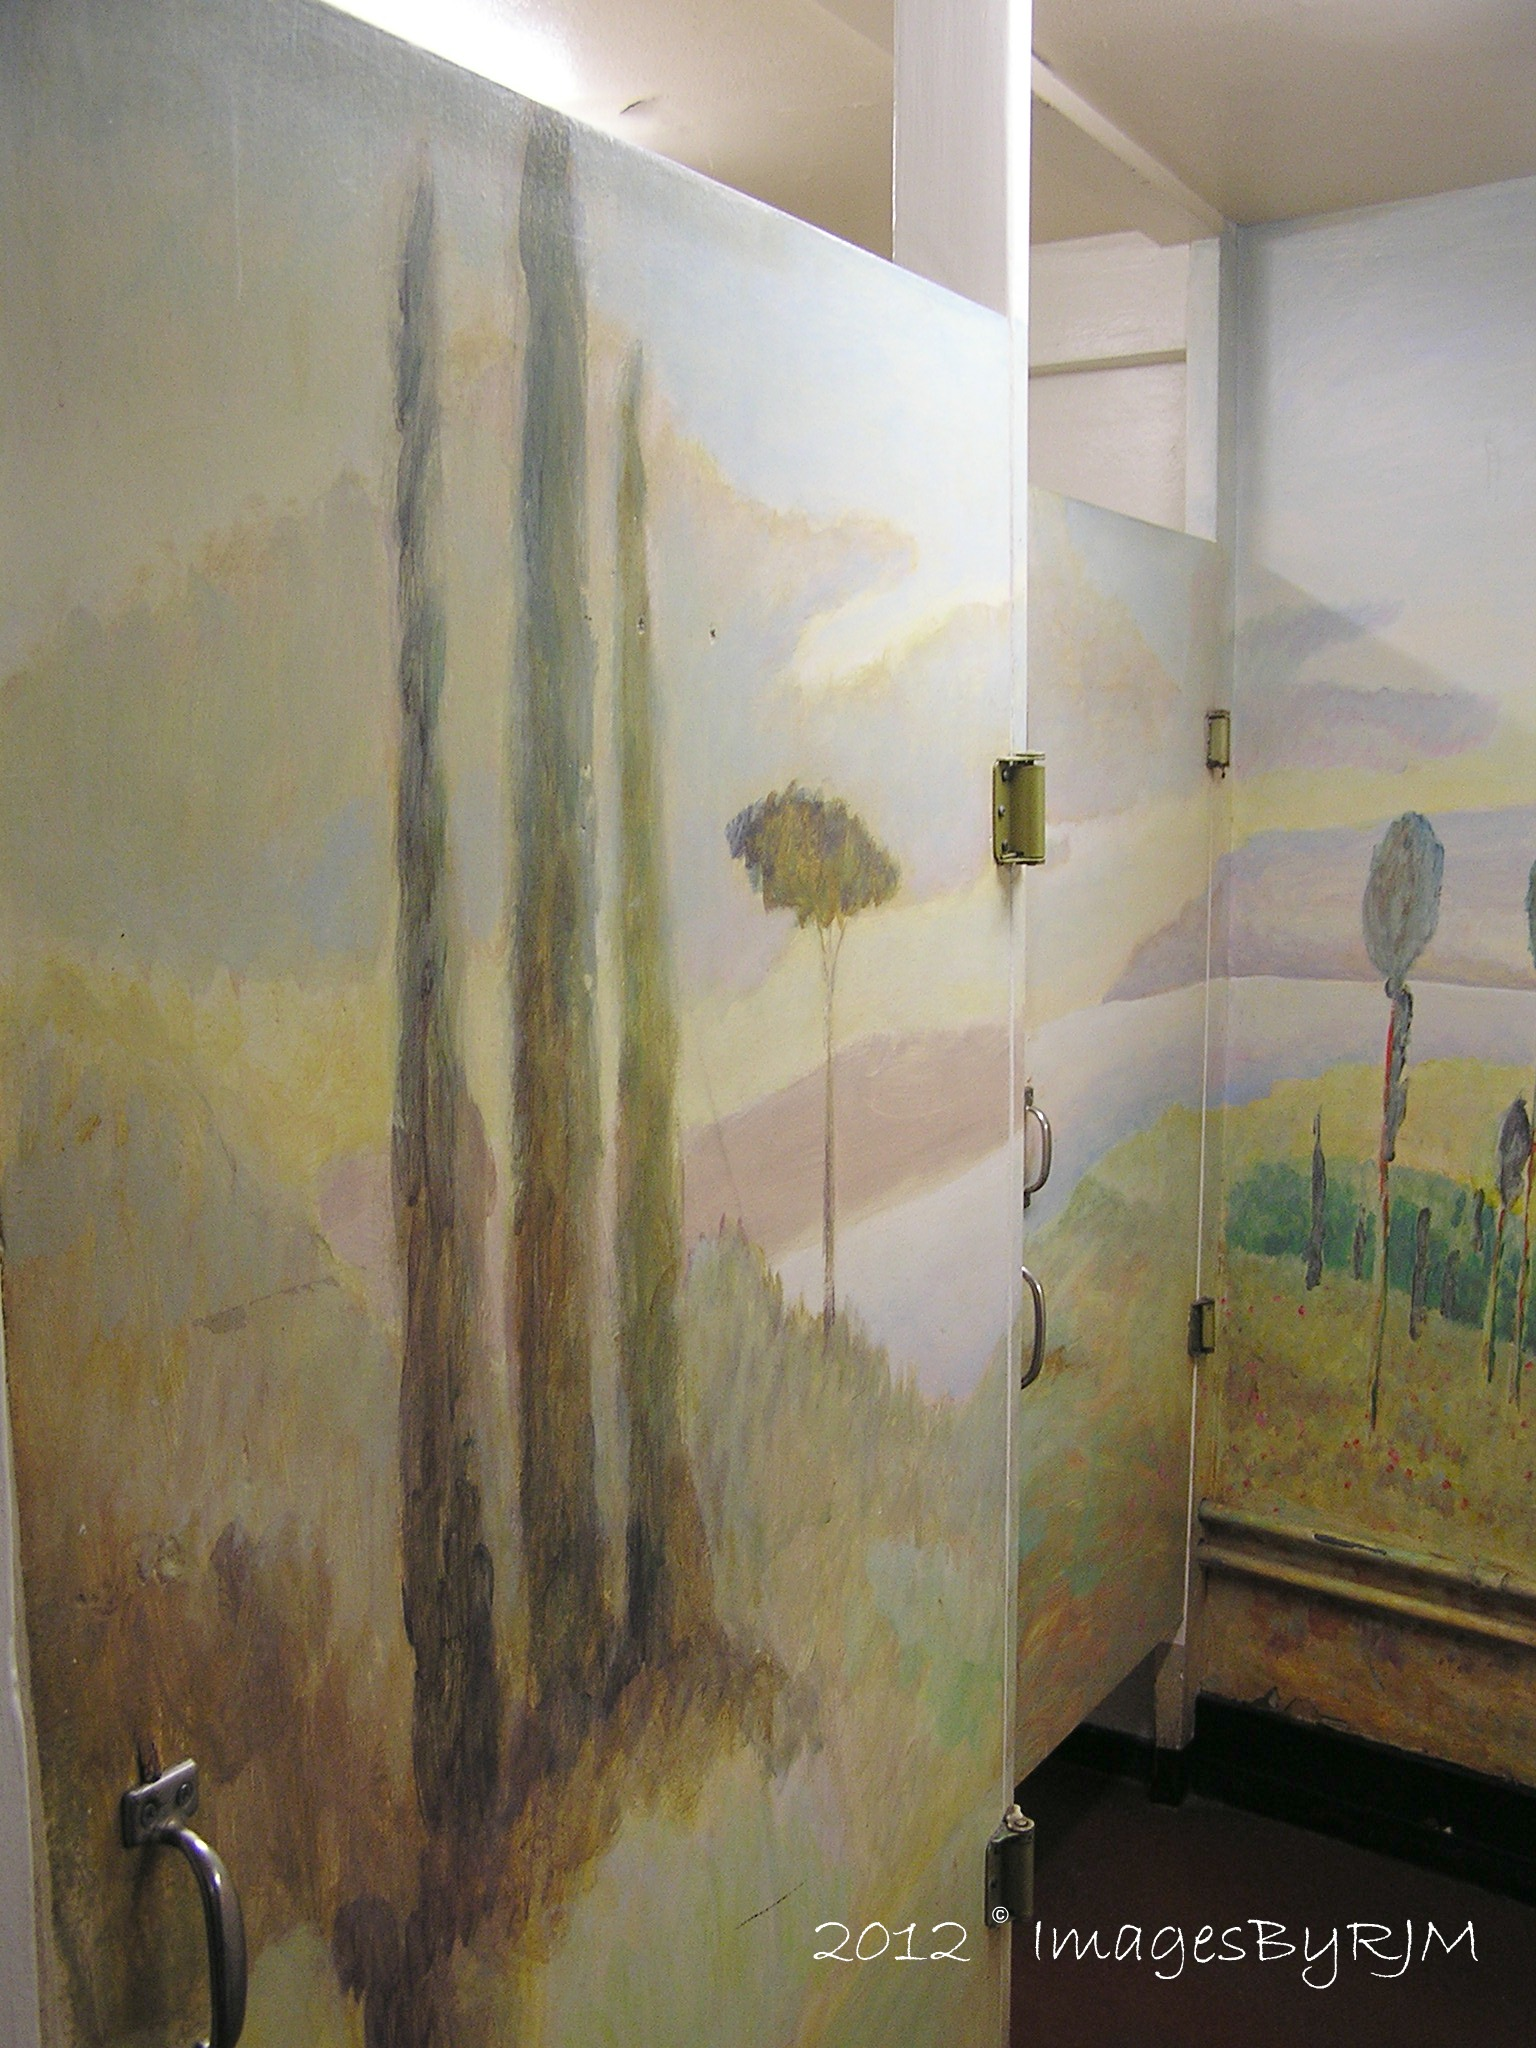 Mural-painted restroom stall door and wall at Nepenthe Restaurant.